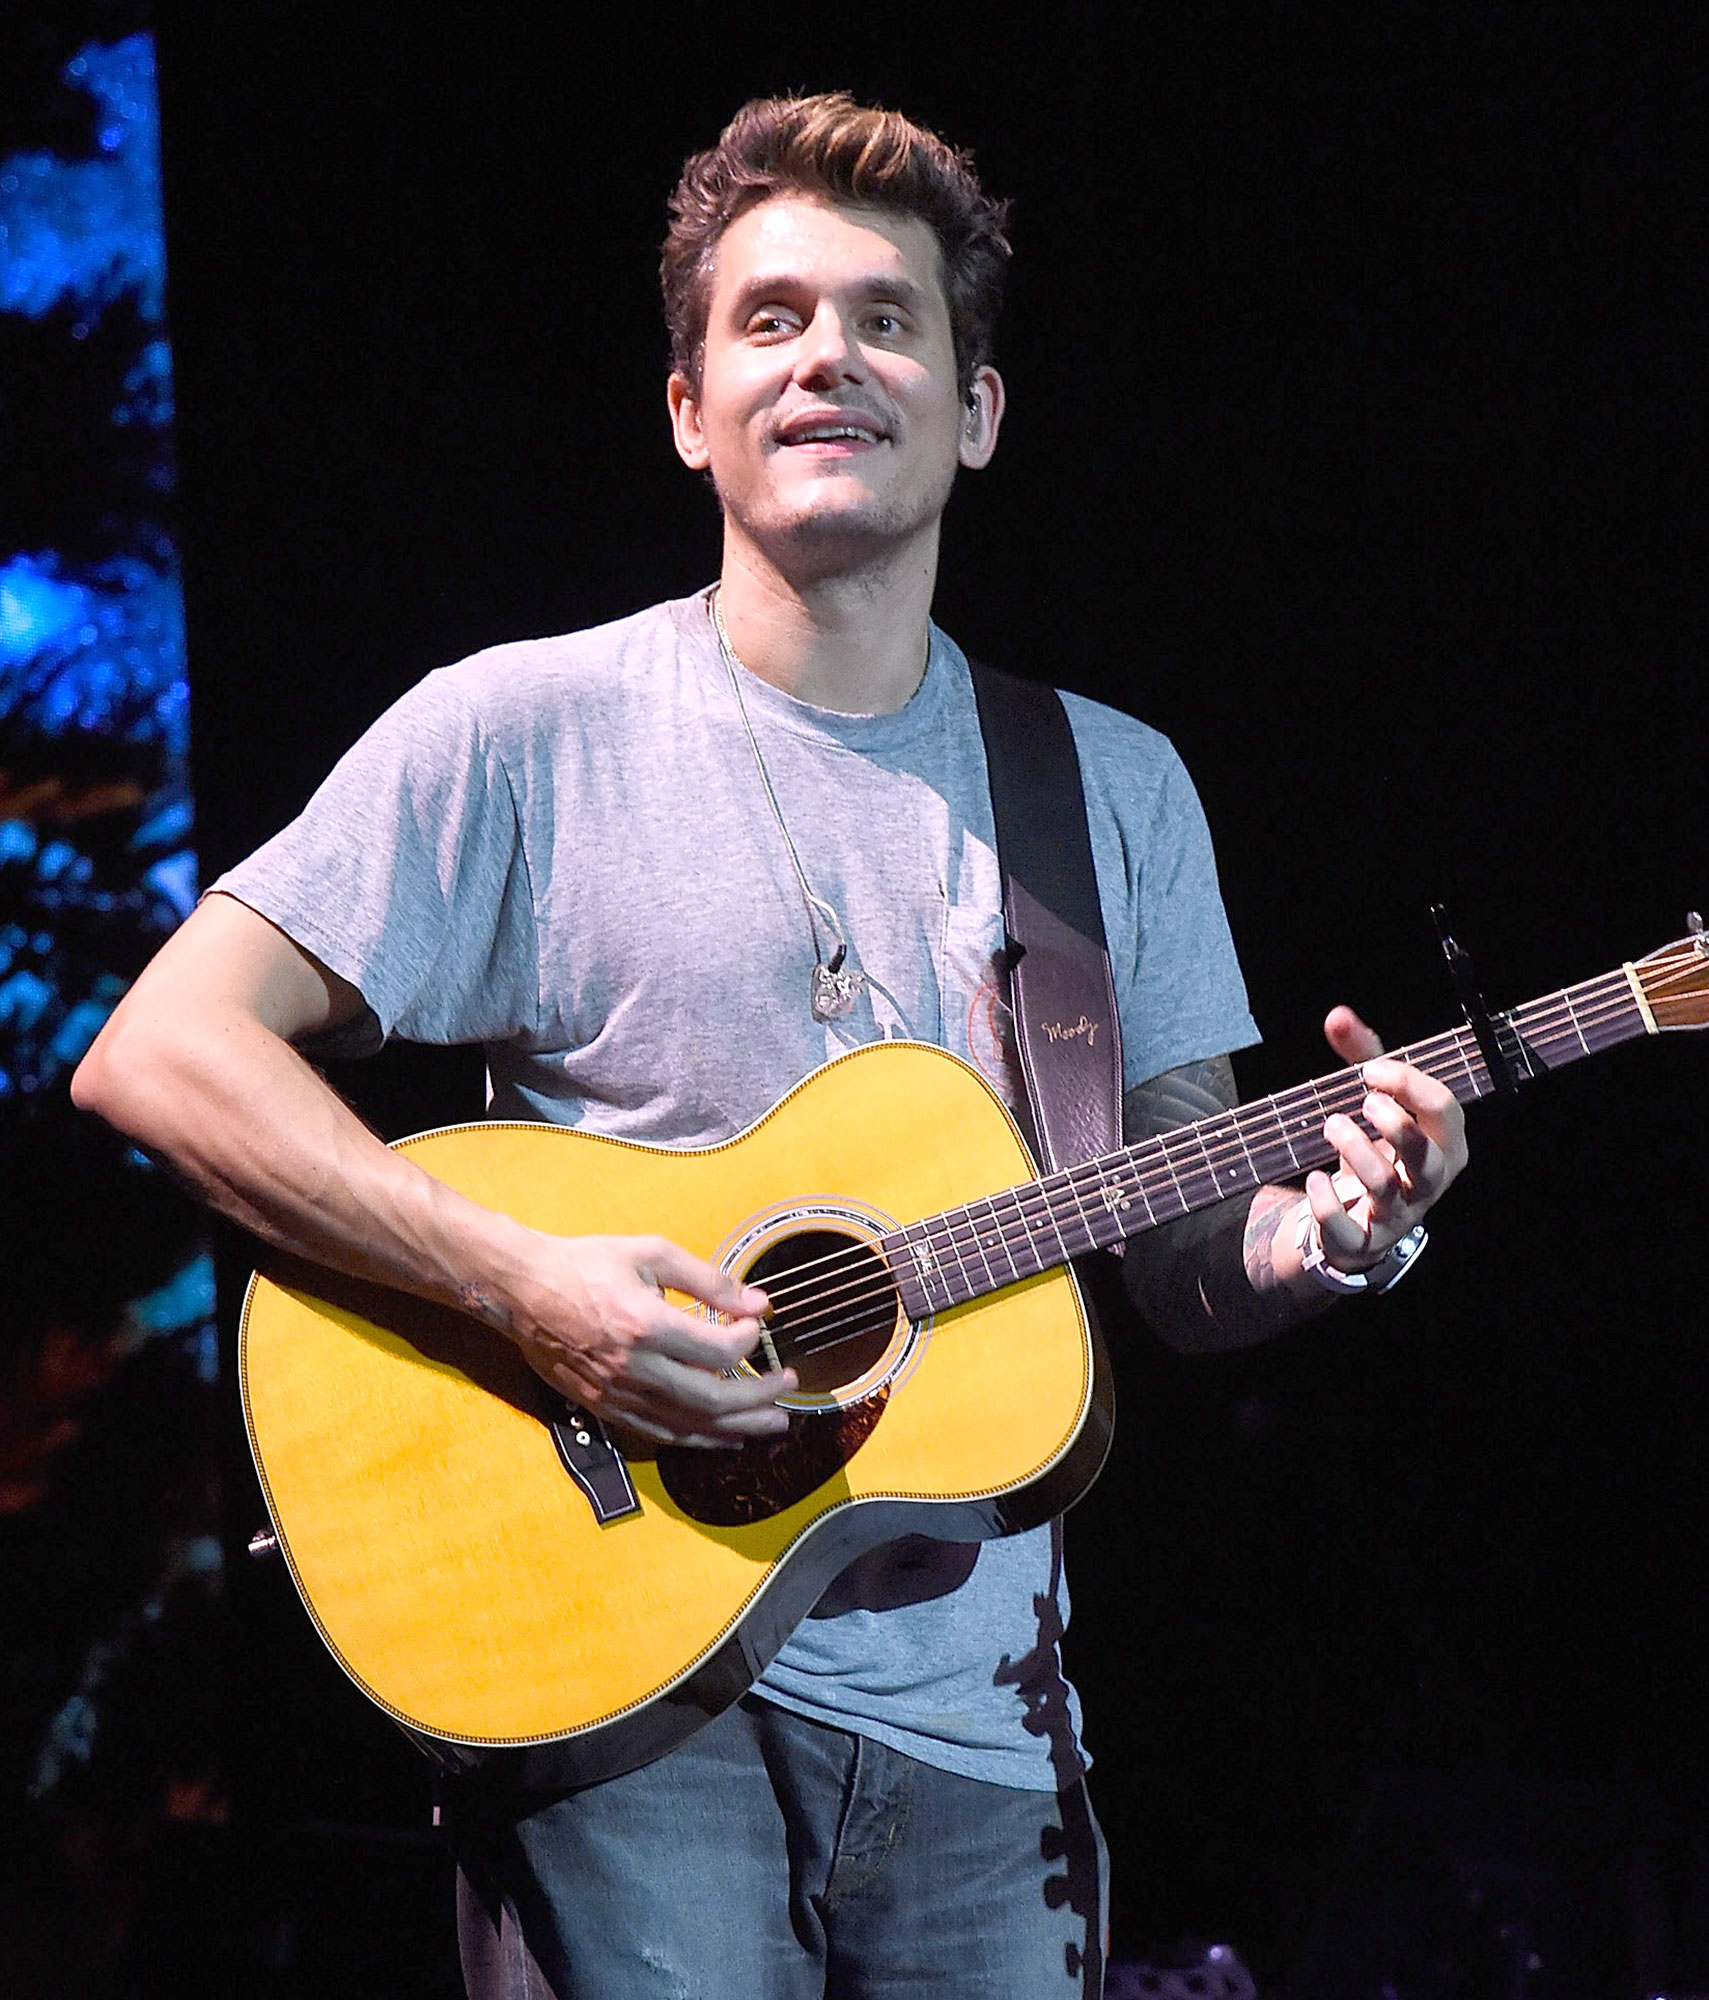 John Mayer Performs at Jones Beach